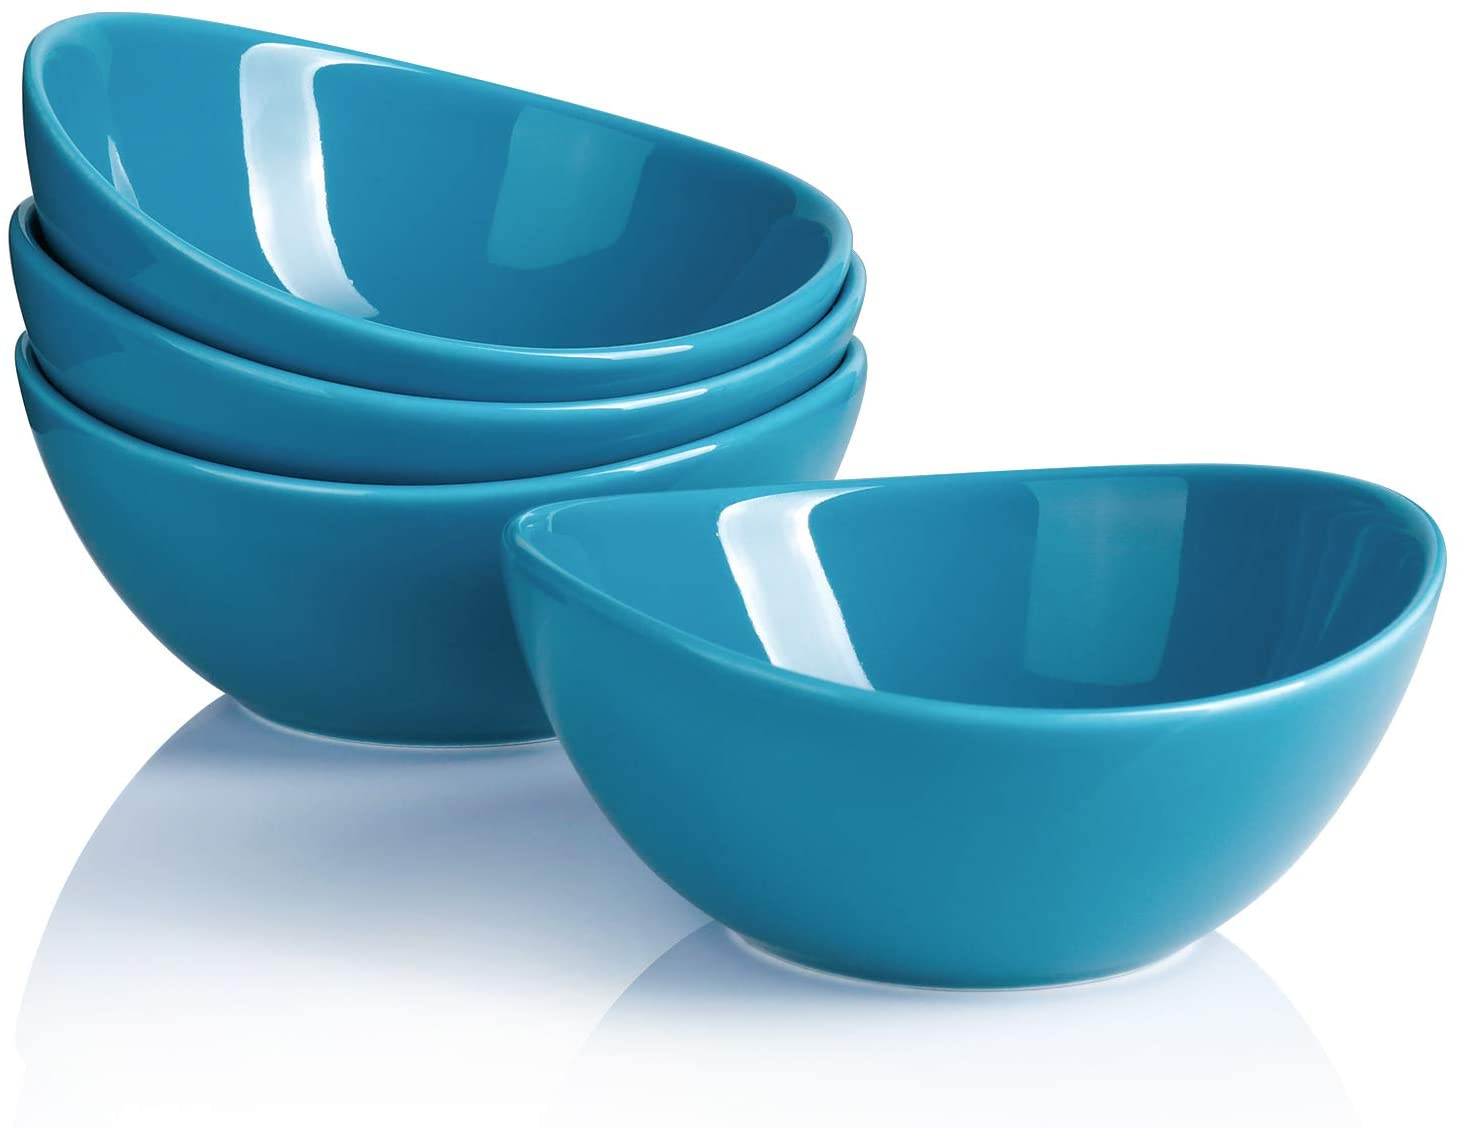 Sweese 101.407 Porcelain Bowls - 10 Ounce for Ice Cream Dessert, Small Side Dishes - Set of 4, Steel Blue